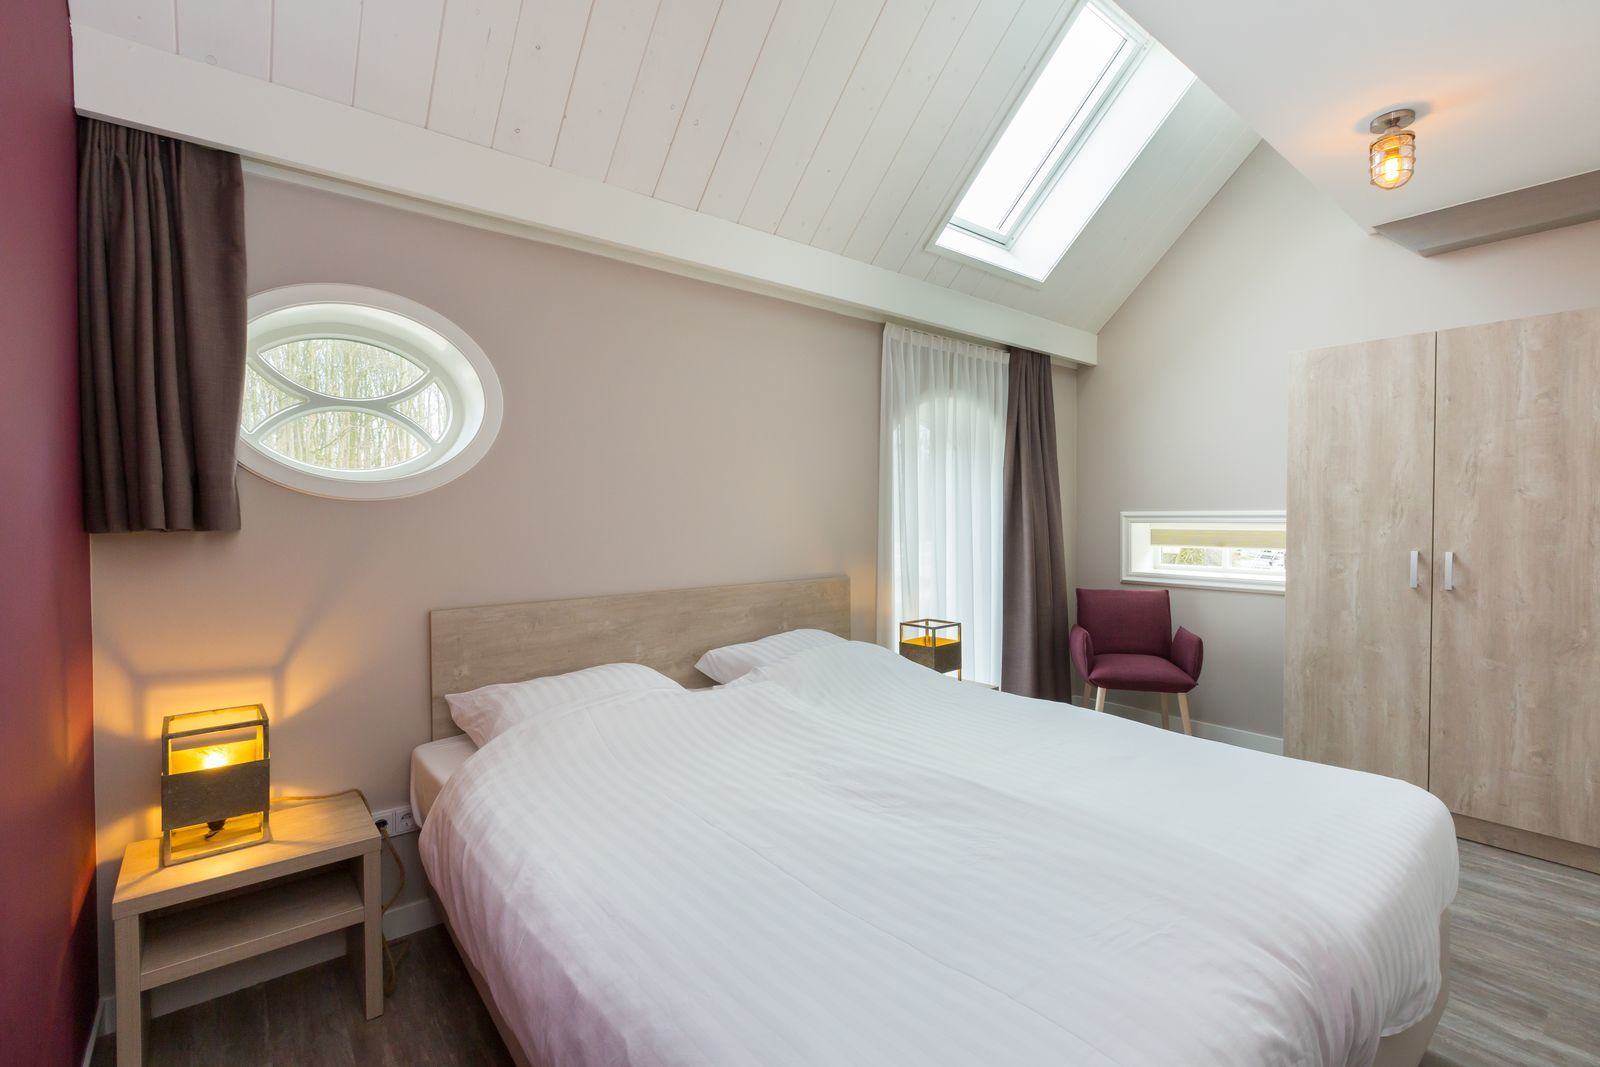 Oostkapelle - Apartment Comfort 4* Persons